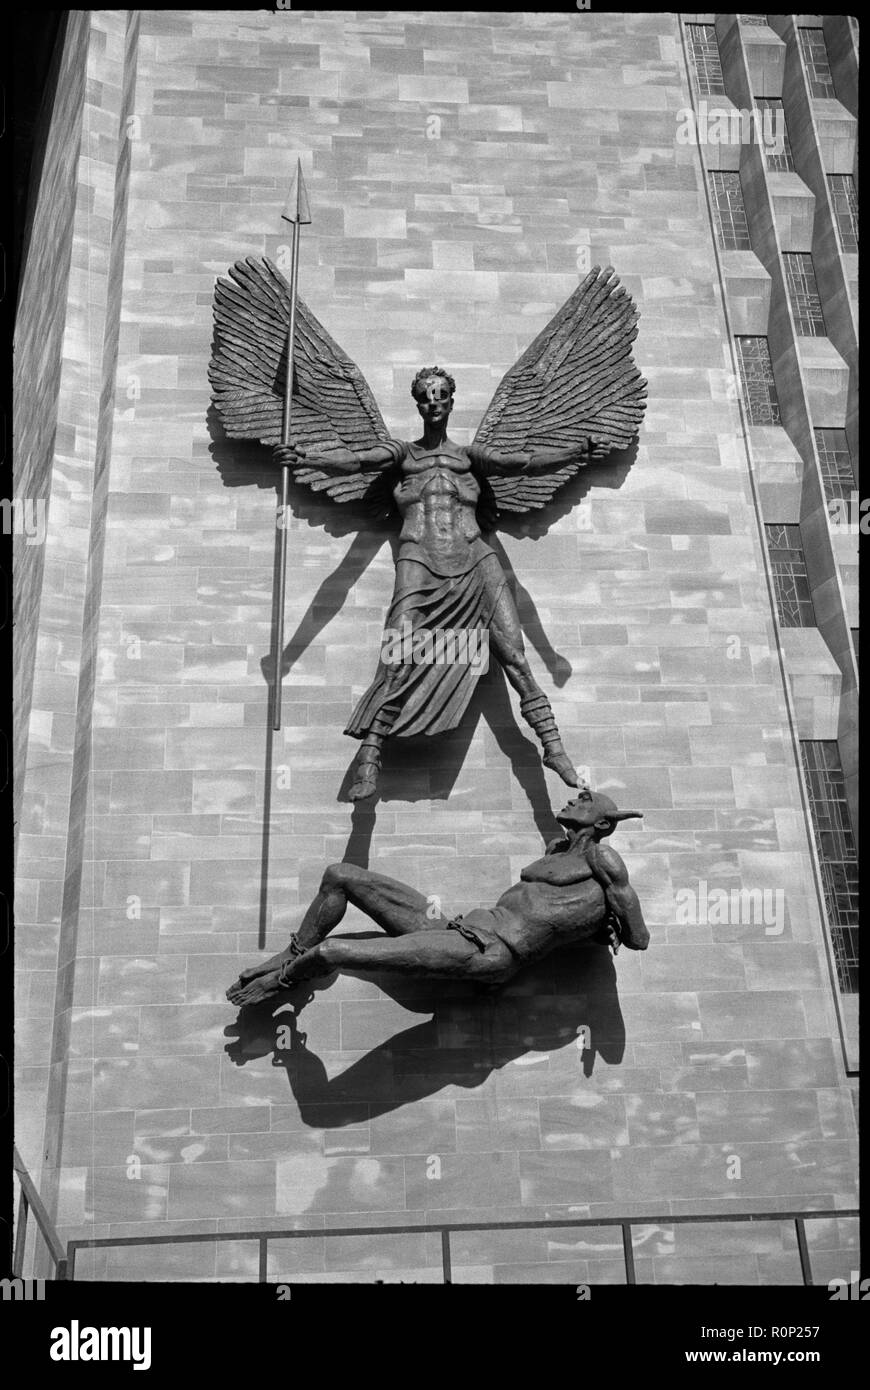 'St Michael's Victory over the Devil', sculpture at Coventry Cathedral, West Midlands, c1958-c1980. Detail of the sculpture depicting St Michael over Lucifer holding a long spear in his right hand, arms and wings outstretched, with Lucifer's feet bound by chains and his arms bound behind his back, attached on the exterior of the baptistery wall of the new Coventry Cathderal.The sculpture is by Jacob Epstein and is attached to the baptistery wall near the porch. It is hung so that Lucifer's nearly horizontal body aligns with the top of the steps that ascend towards the porch, and the top of St  - Stock Image